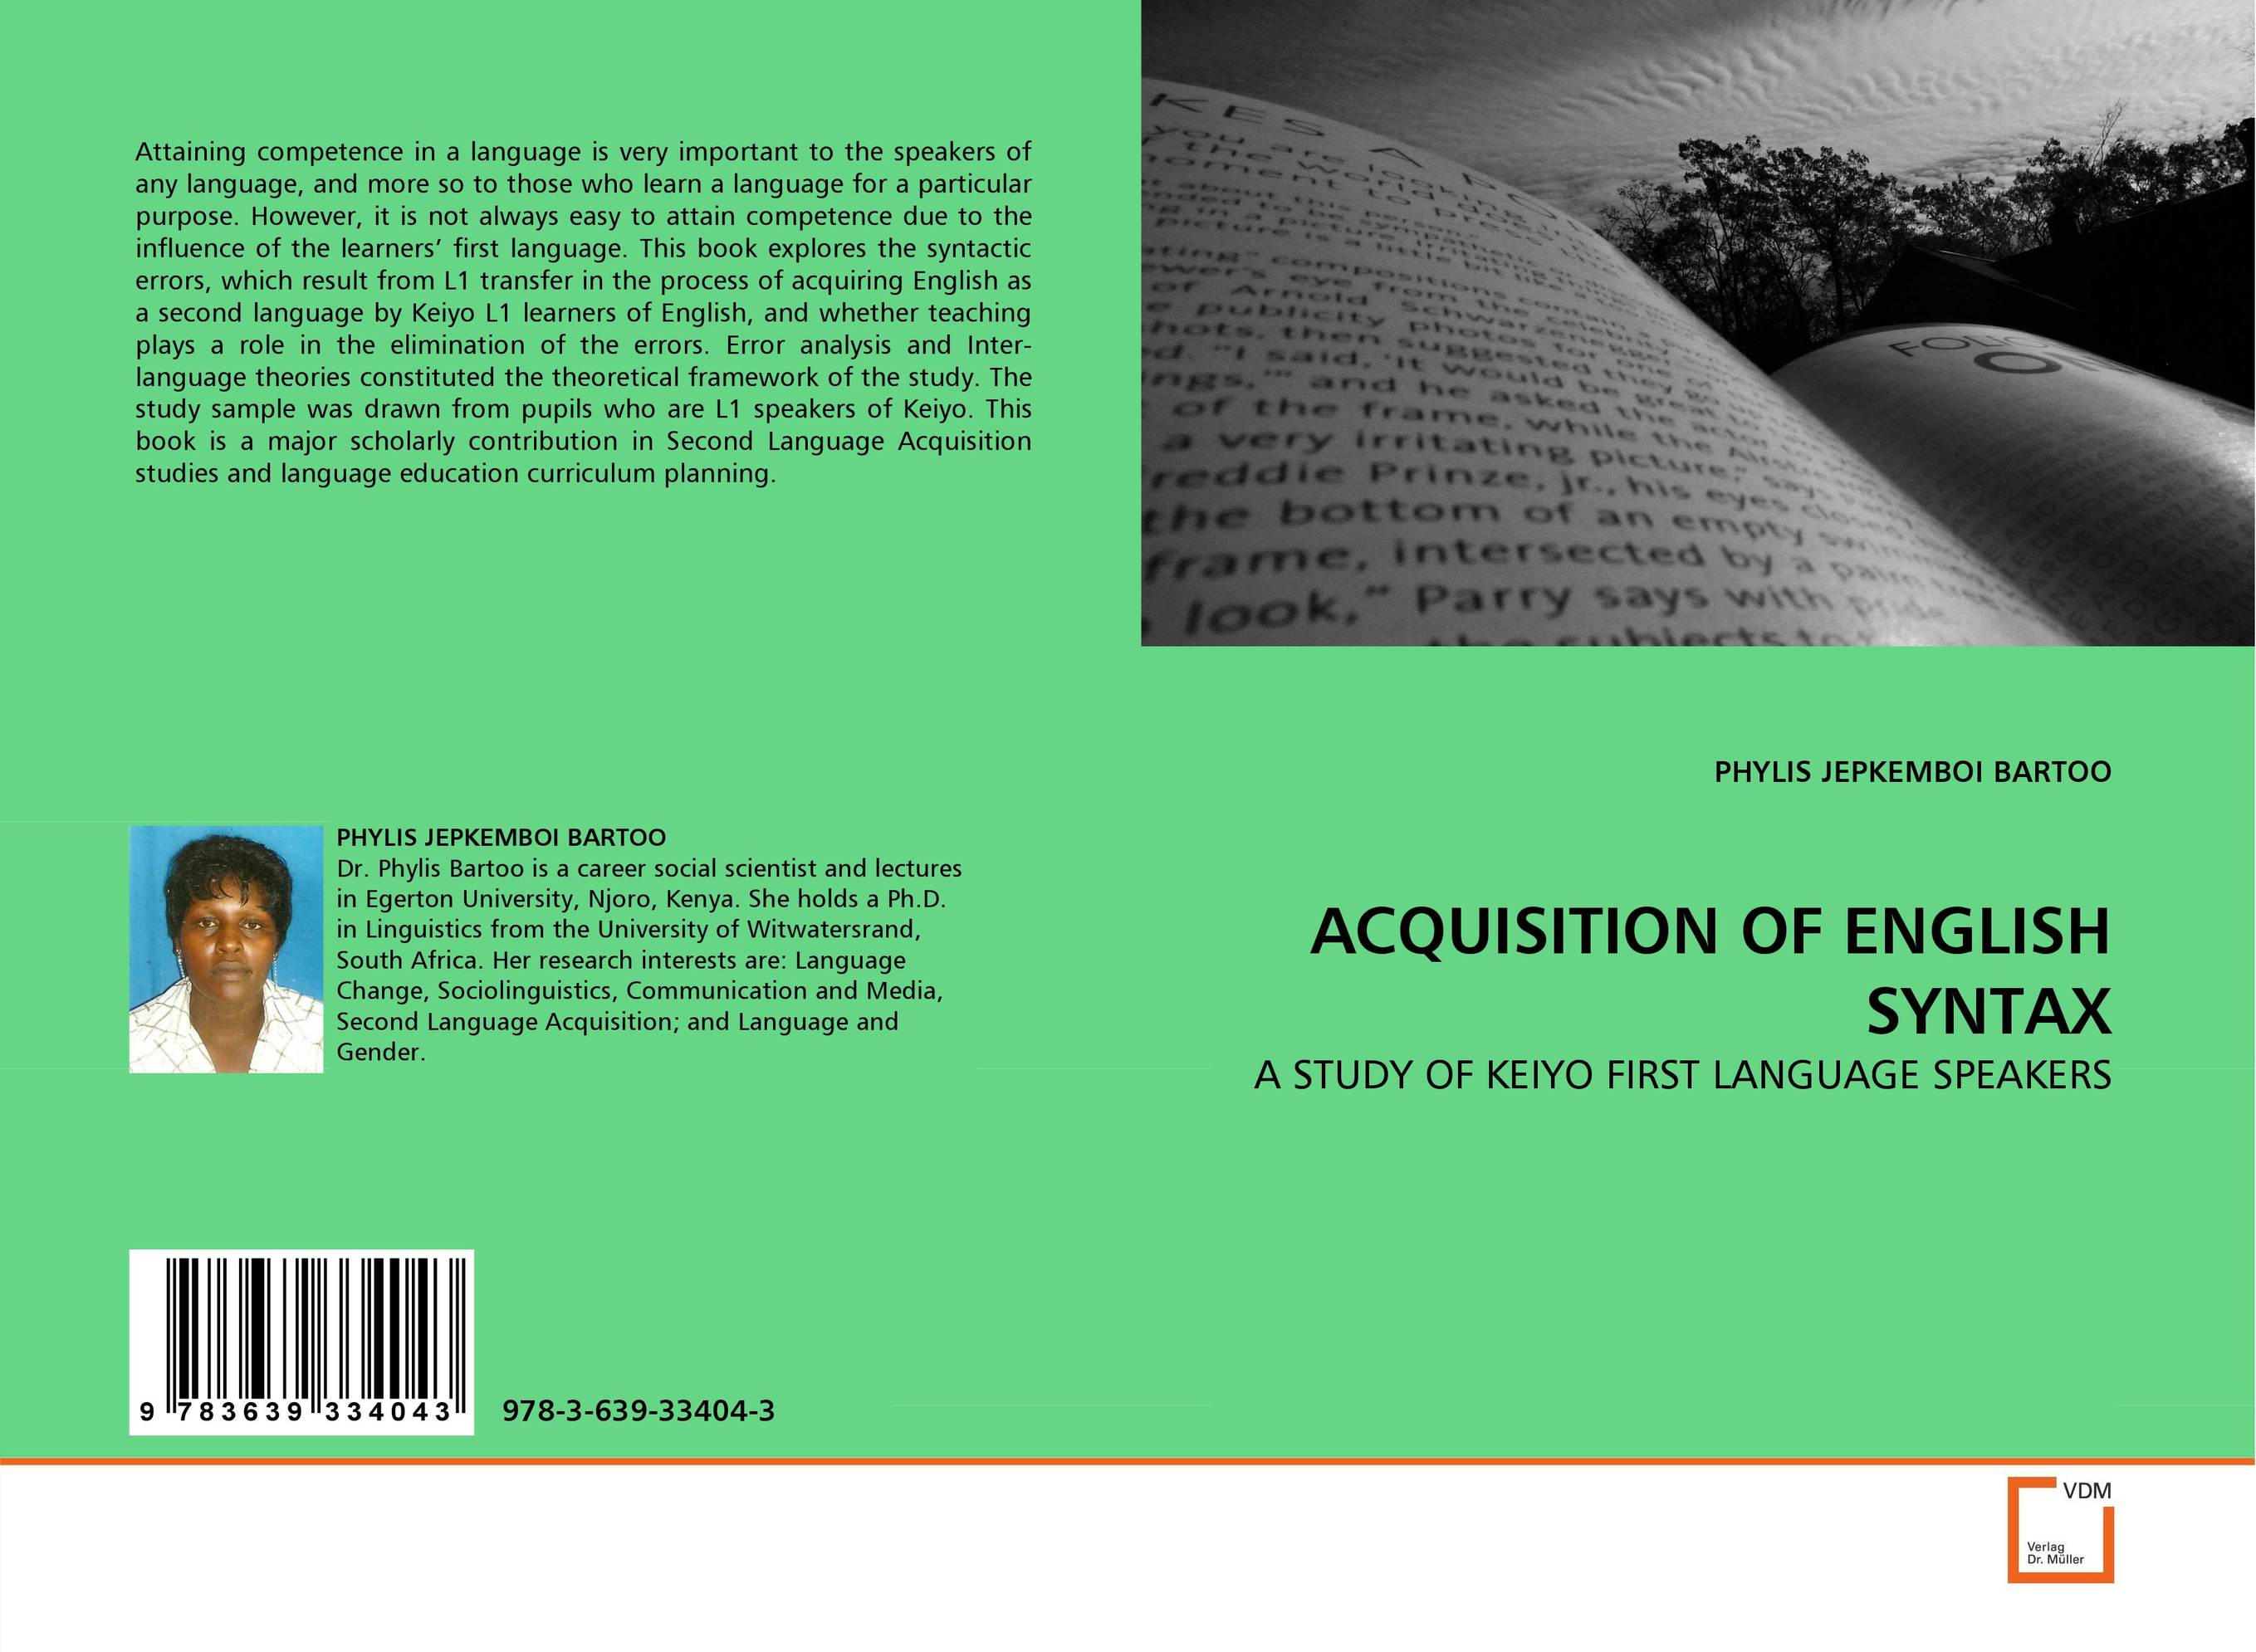 ACQUISITION OF ENGLISH SYNTAX the role of ict in the teaching of english as a foreign language efl